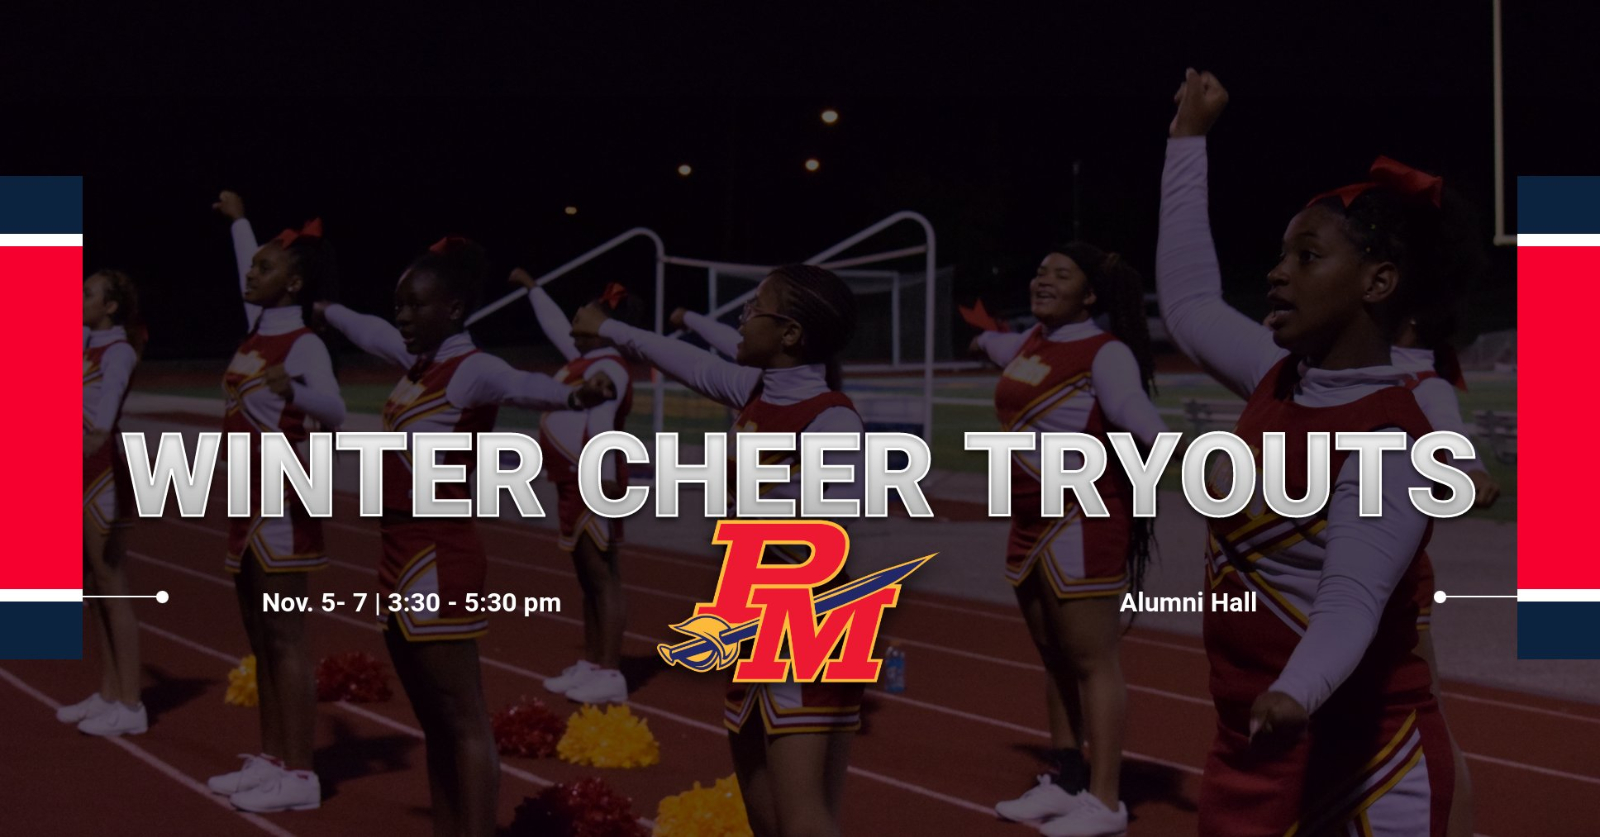 Winter Cheer Tryouts